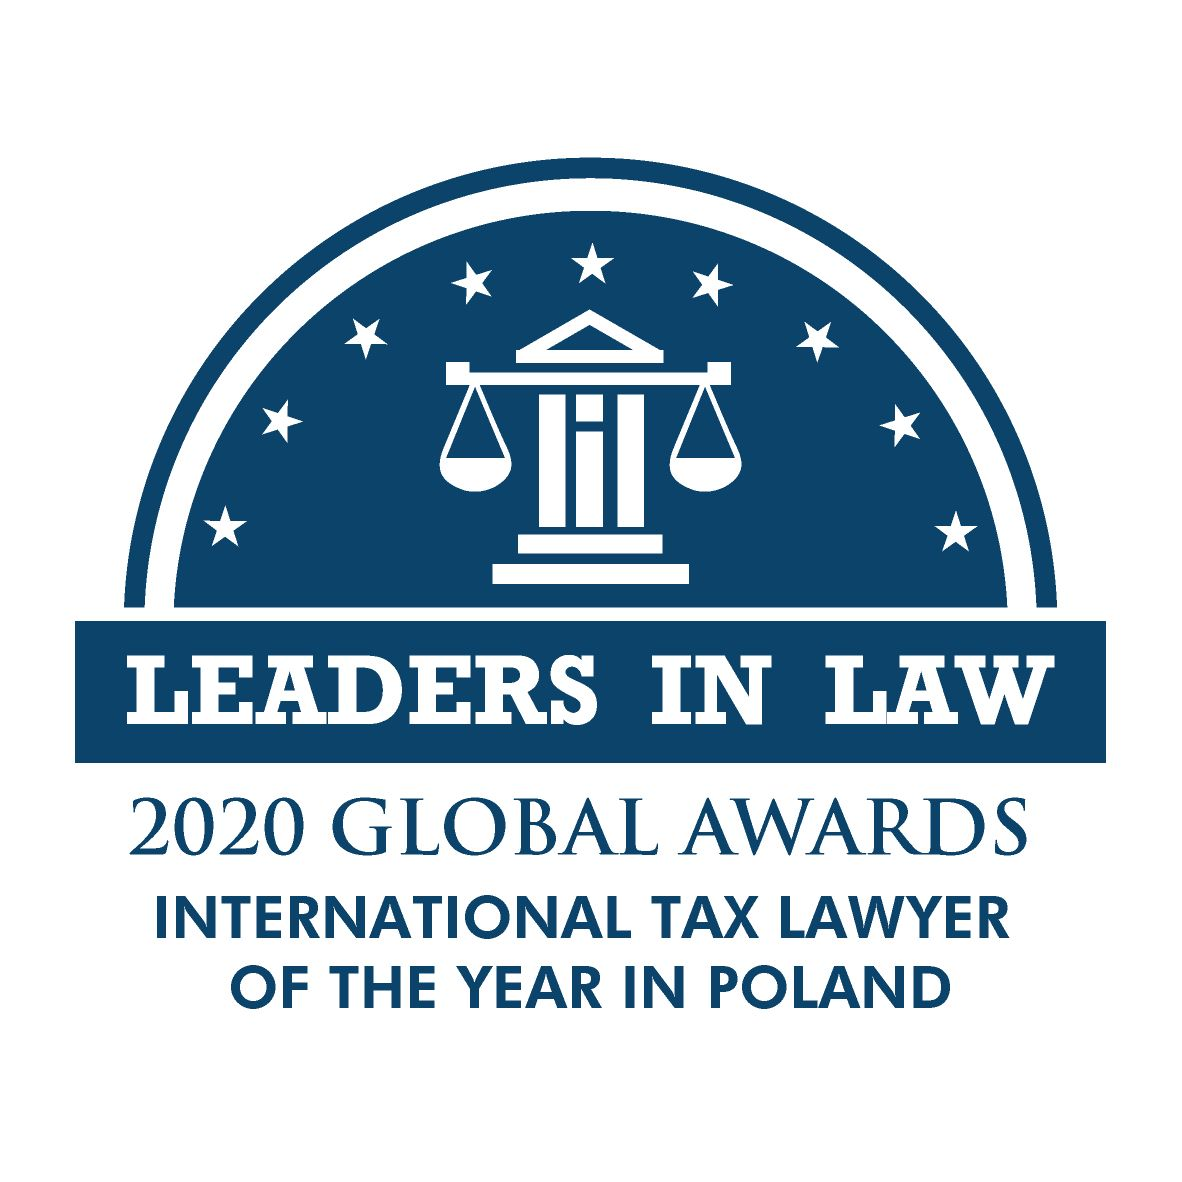 Leaders in Law 2020 - TAX LAWYER OF THE YEAR POLAND